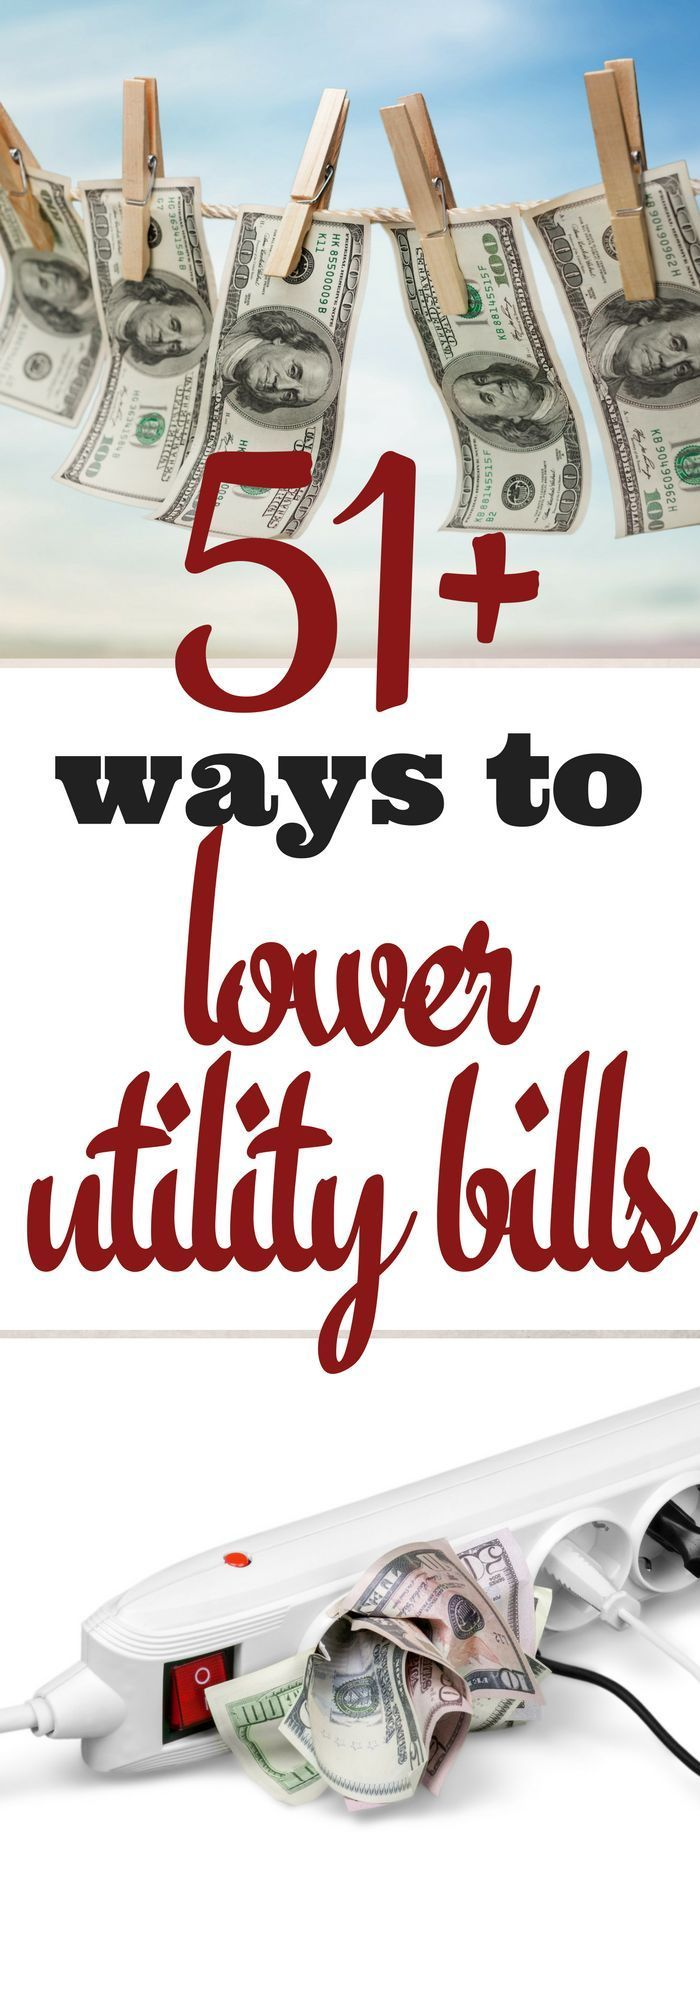 Lower utility bills - we all want it, but where to even start! Dozens of tips to save you money on heat, electricity and more